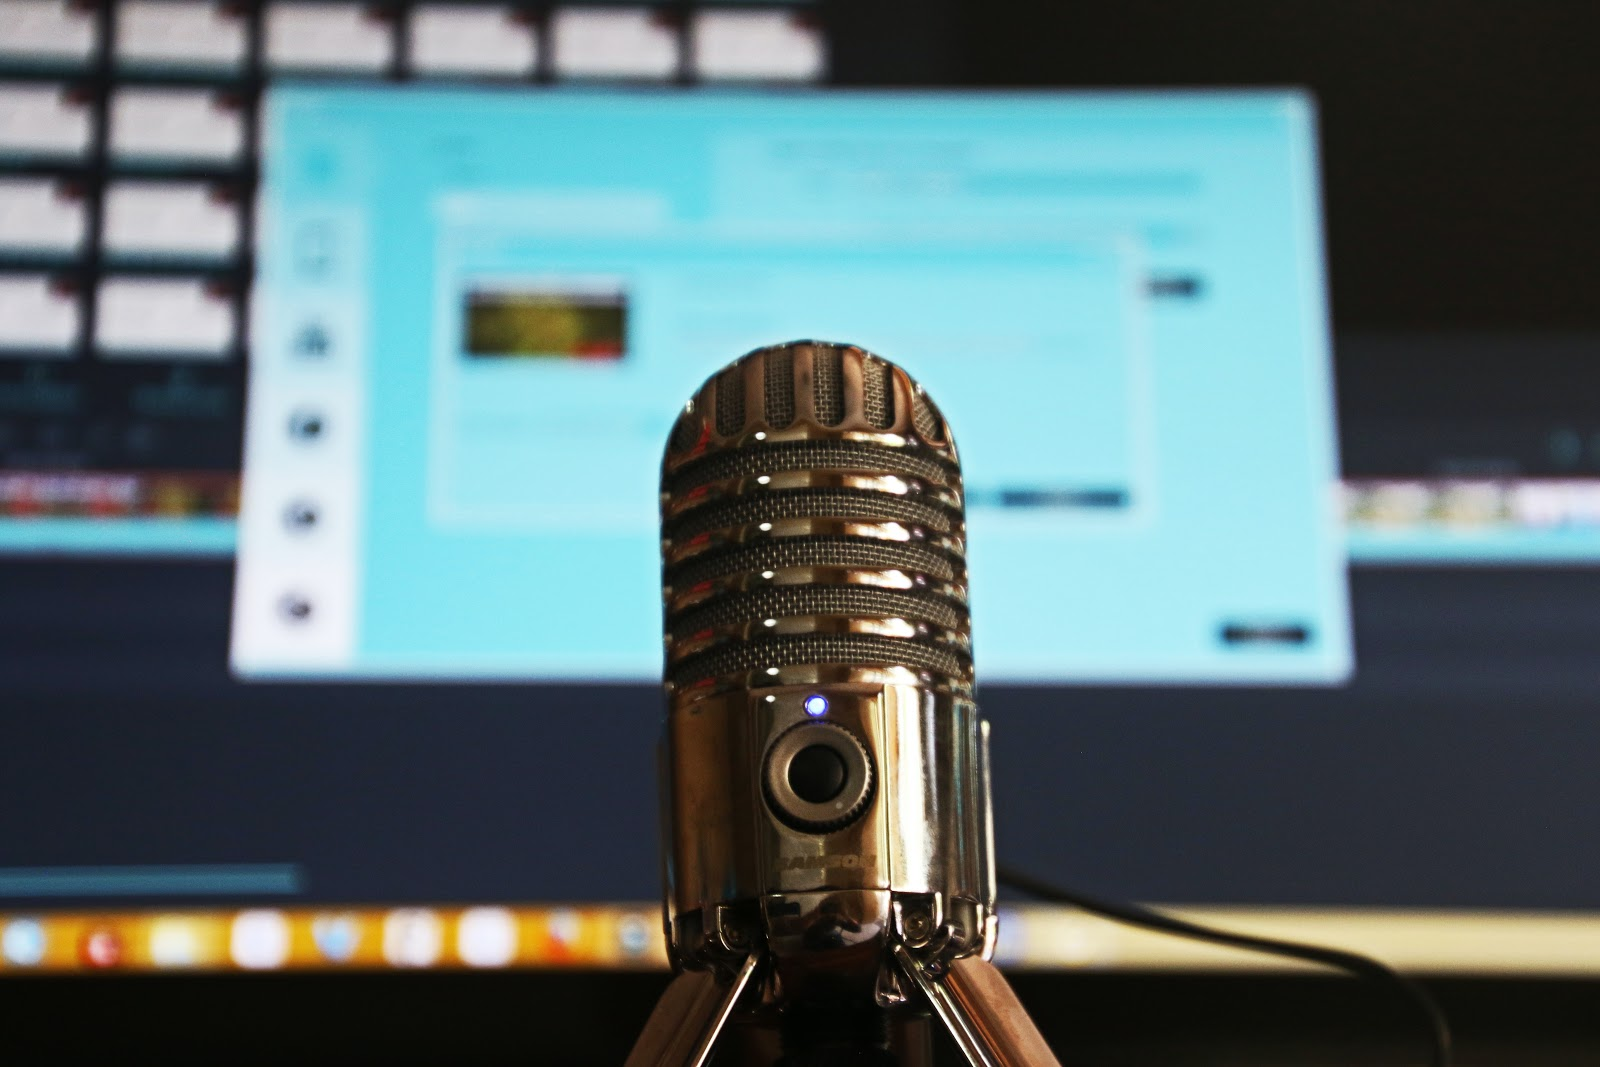 Microphone in front of a computer screen ready to record a podcast for a startup business.